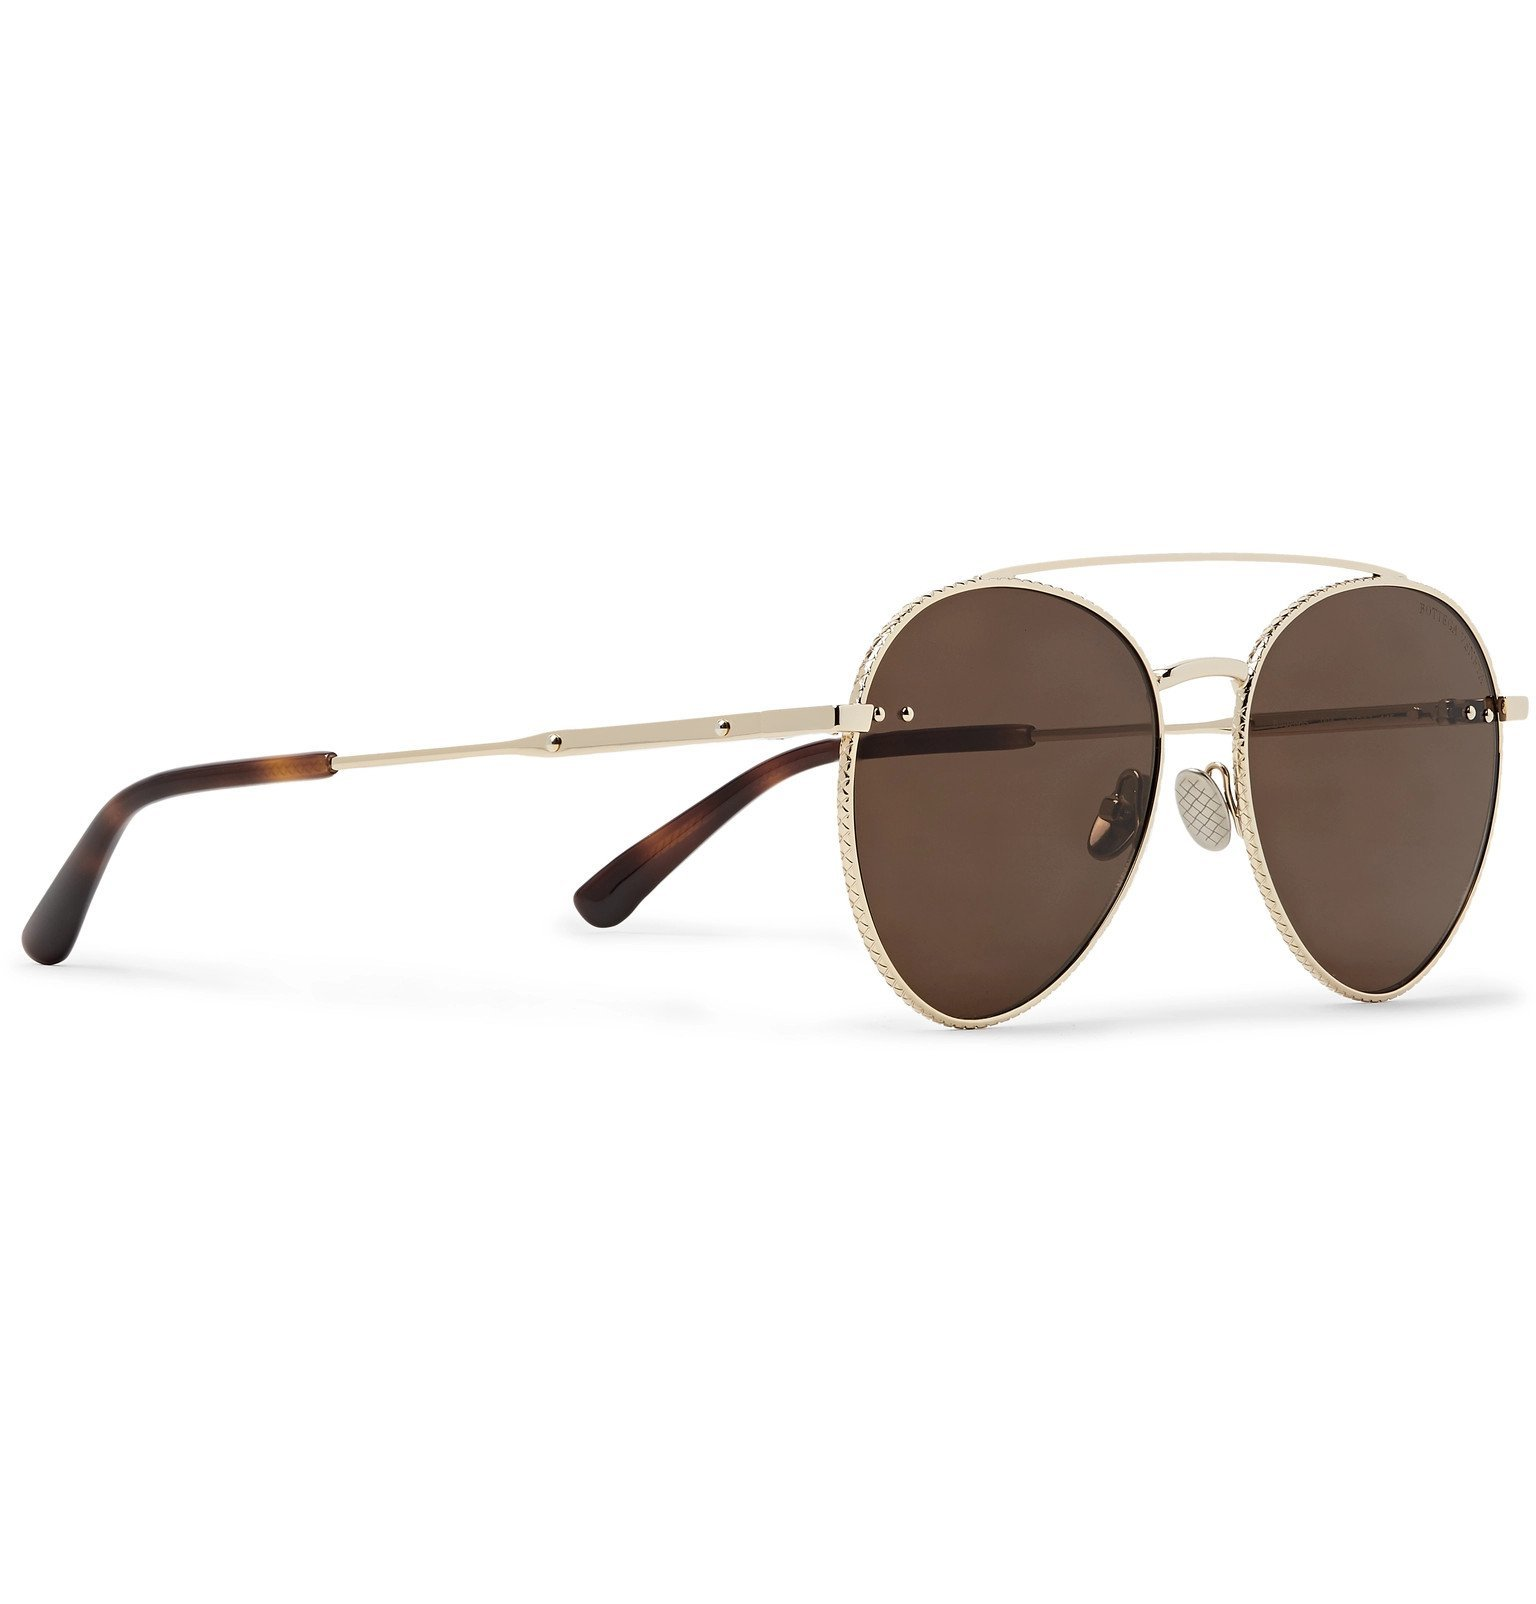 Bottega Veneta - Round-Frame Engraved Gold-Tone Sunglasses - Gold